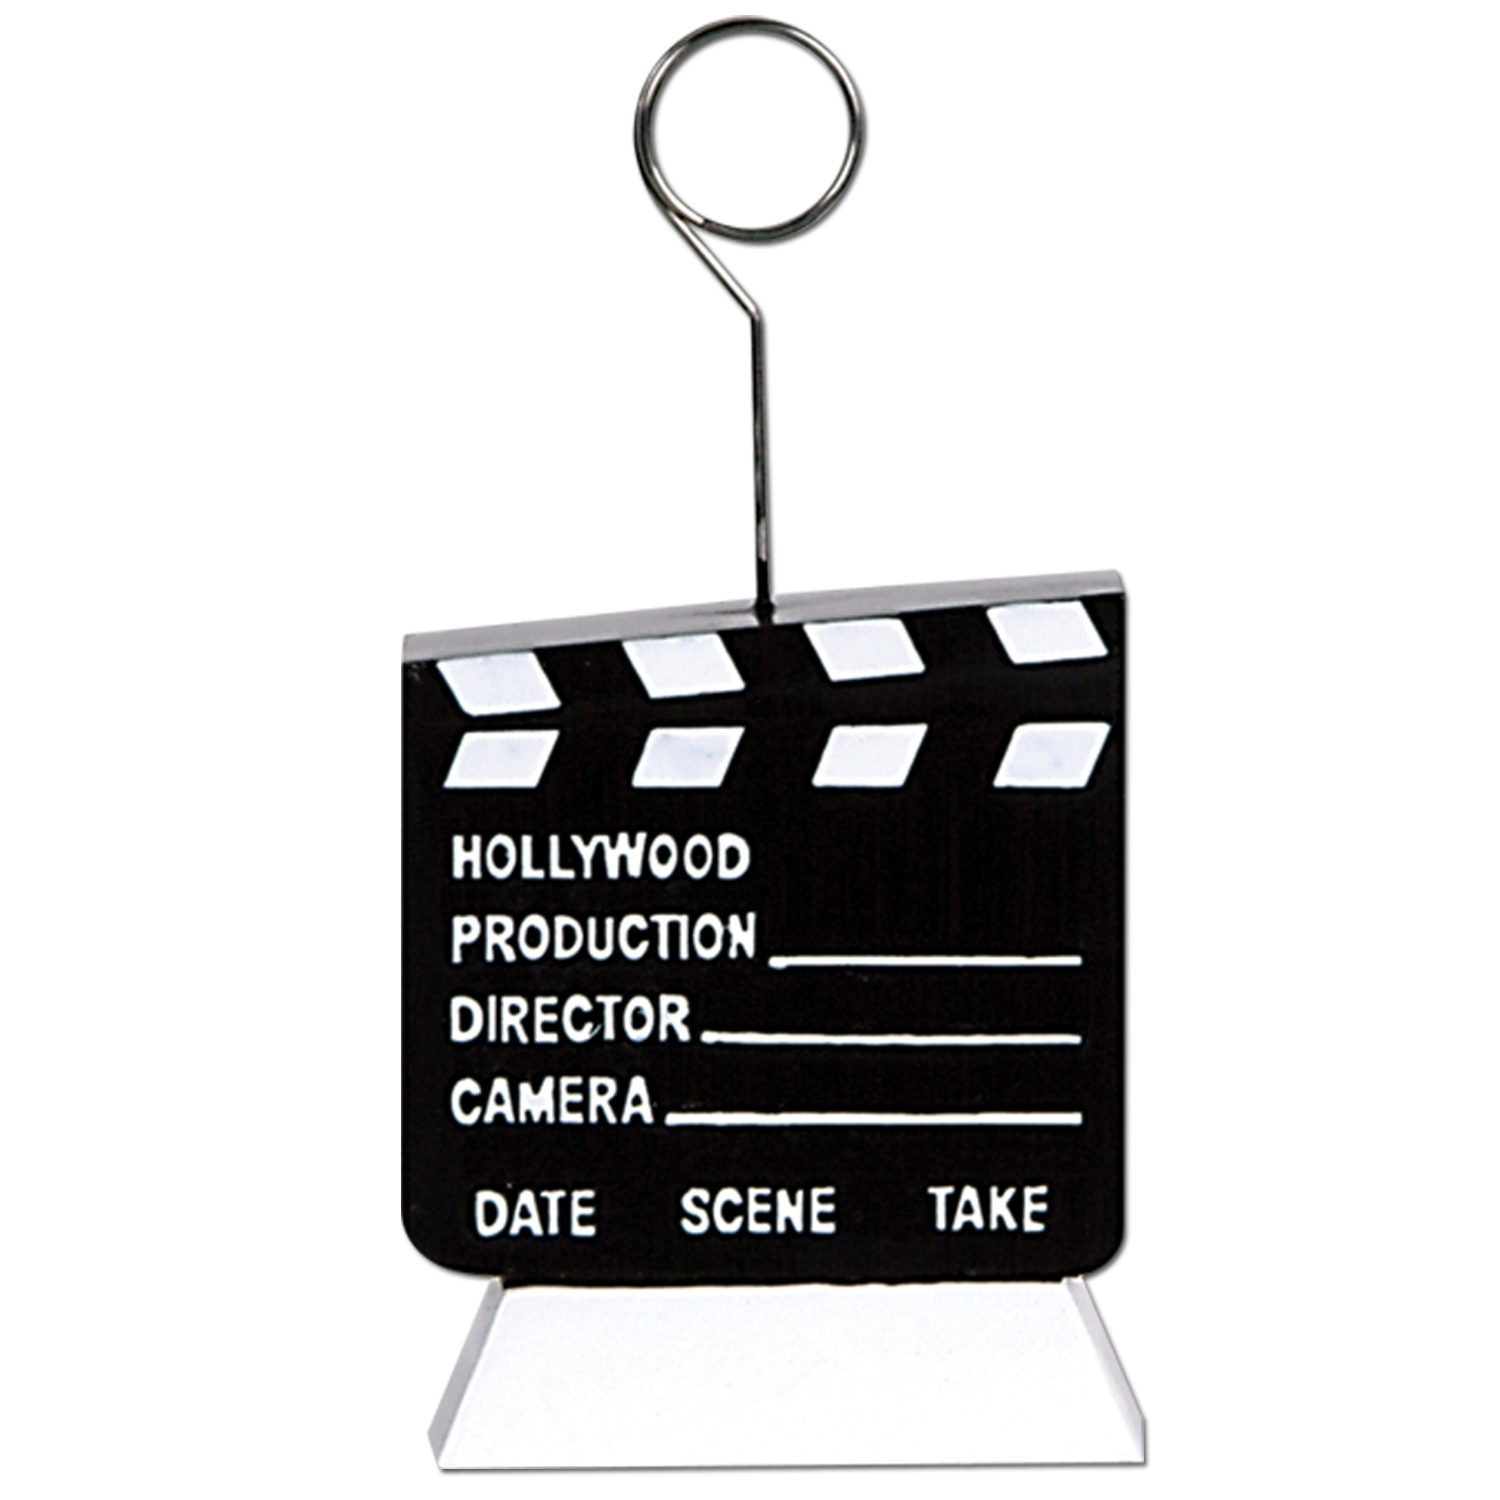 Clapboard Photo/Balloon Holder (Pack of 6) Clapboard Photo/Balloon Holder, decoration, party favor, new years eve, wholesale, inexpensive, bulk